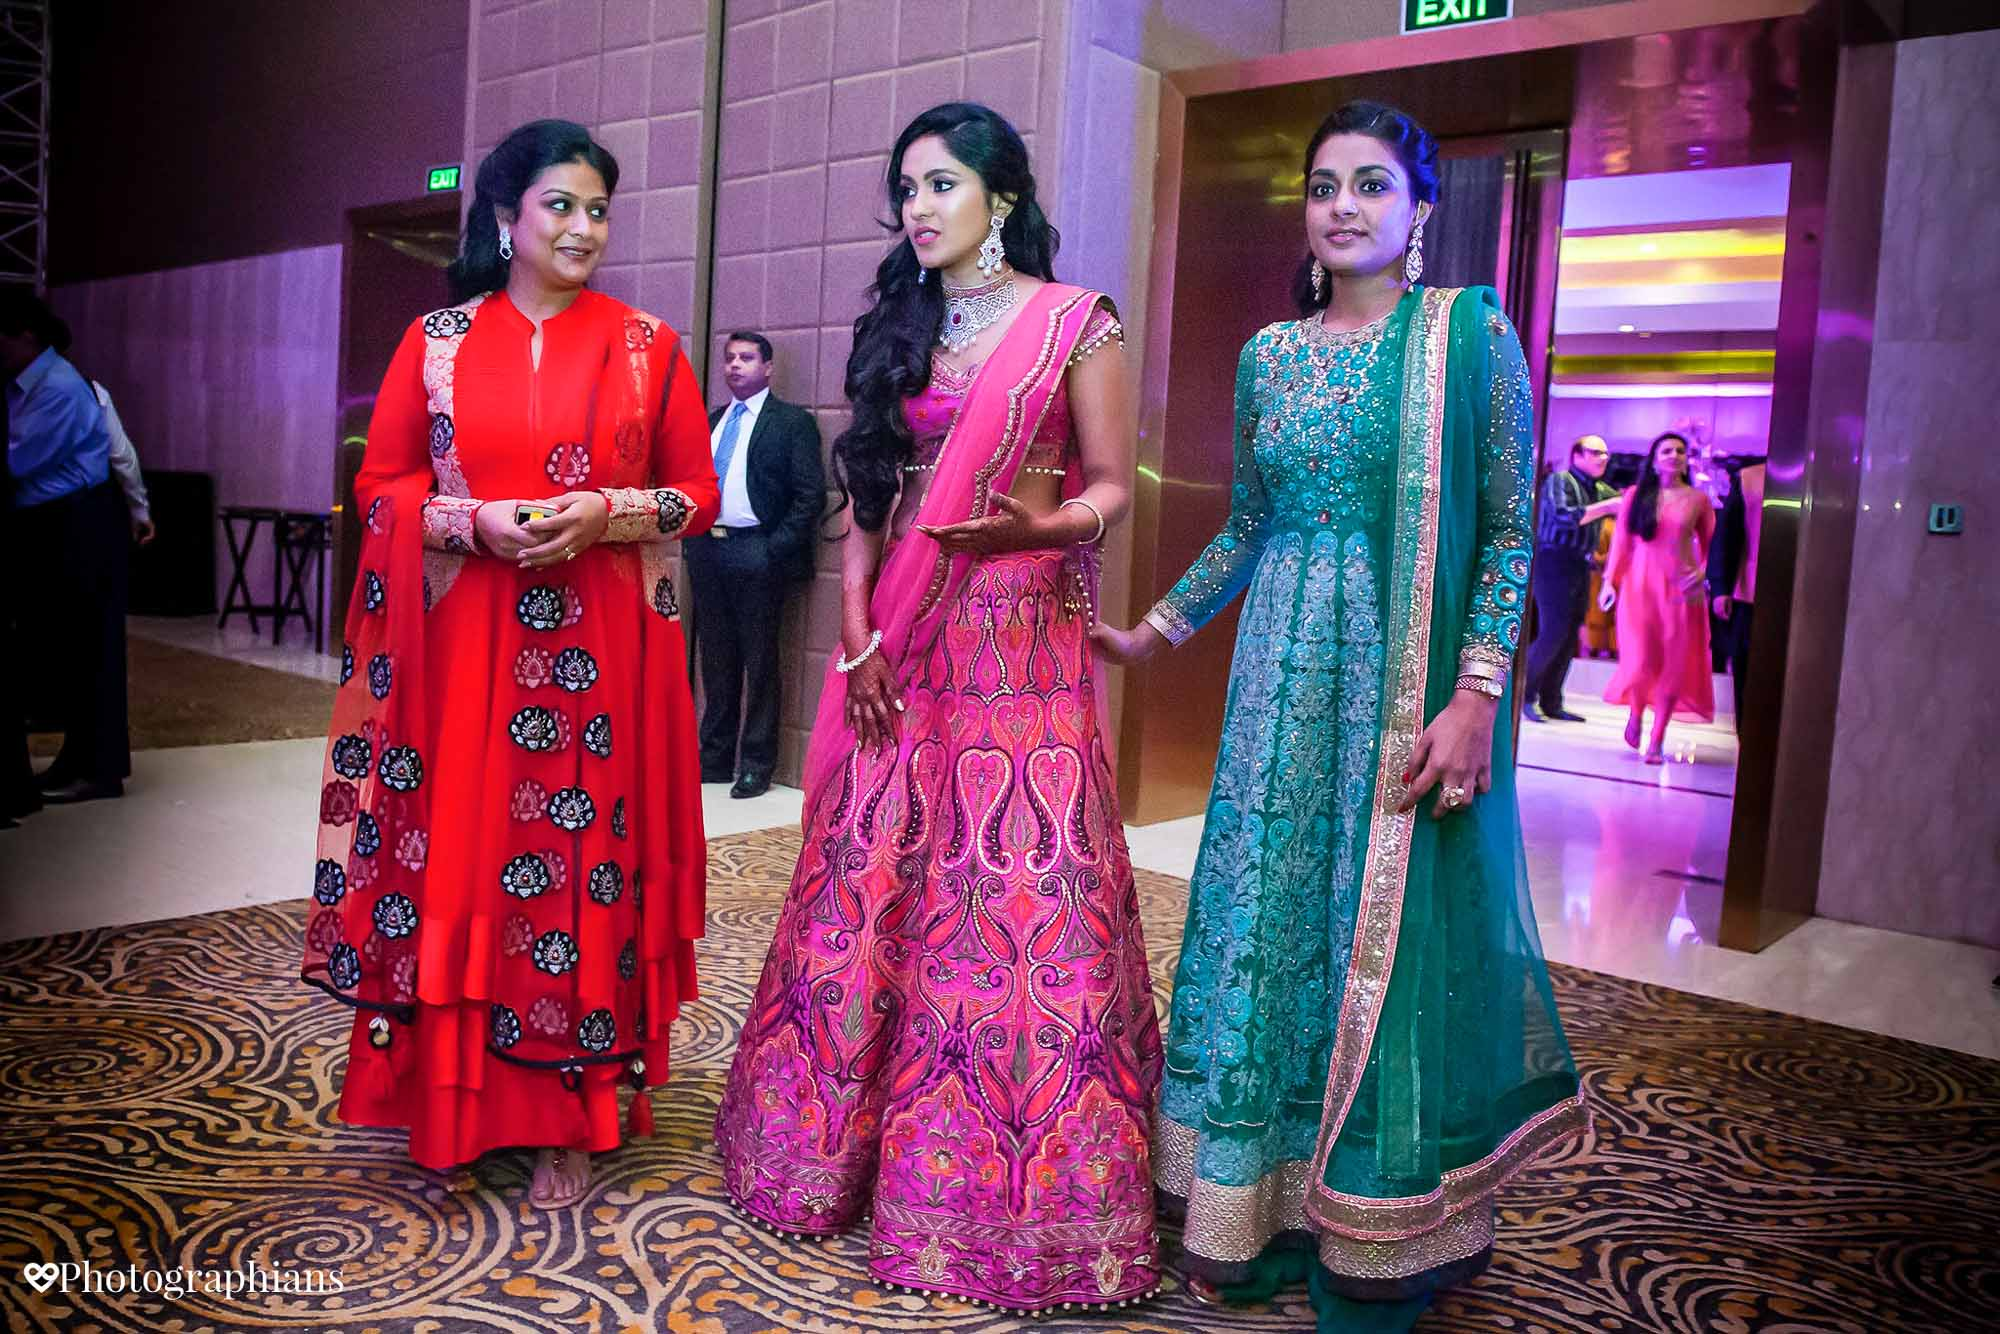 Punjabi_Marwari_Wedding_Kolkata_Photographians_-VIDHI-15